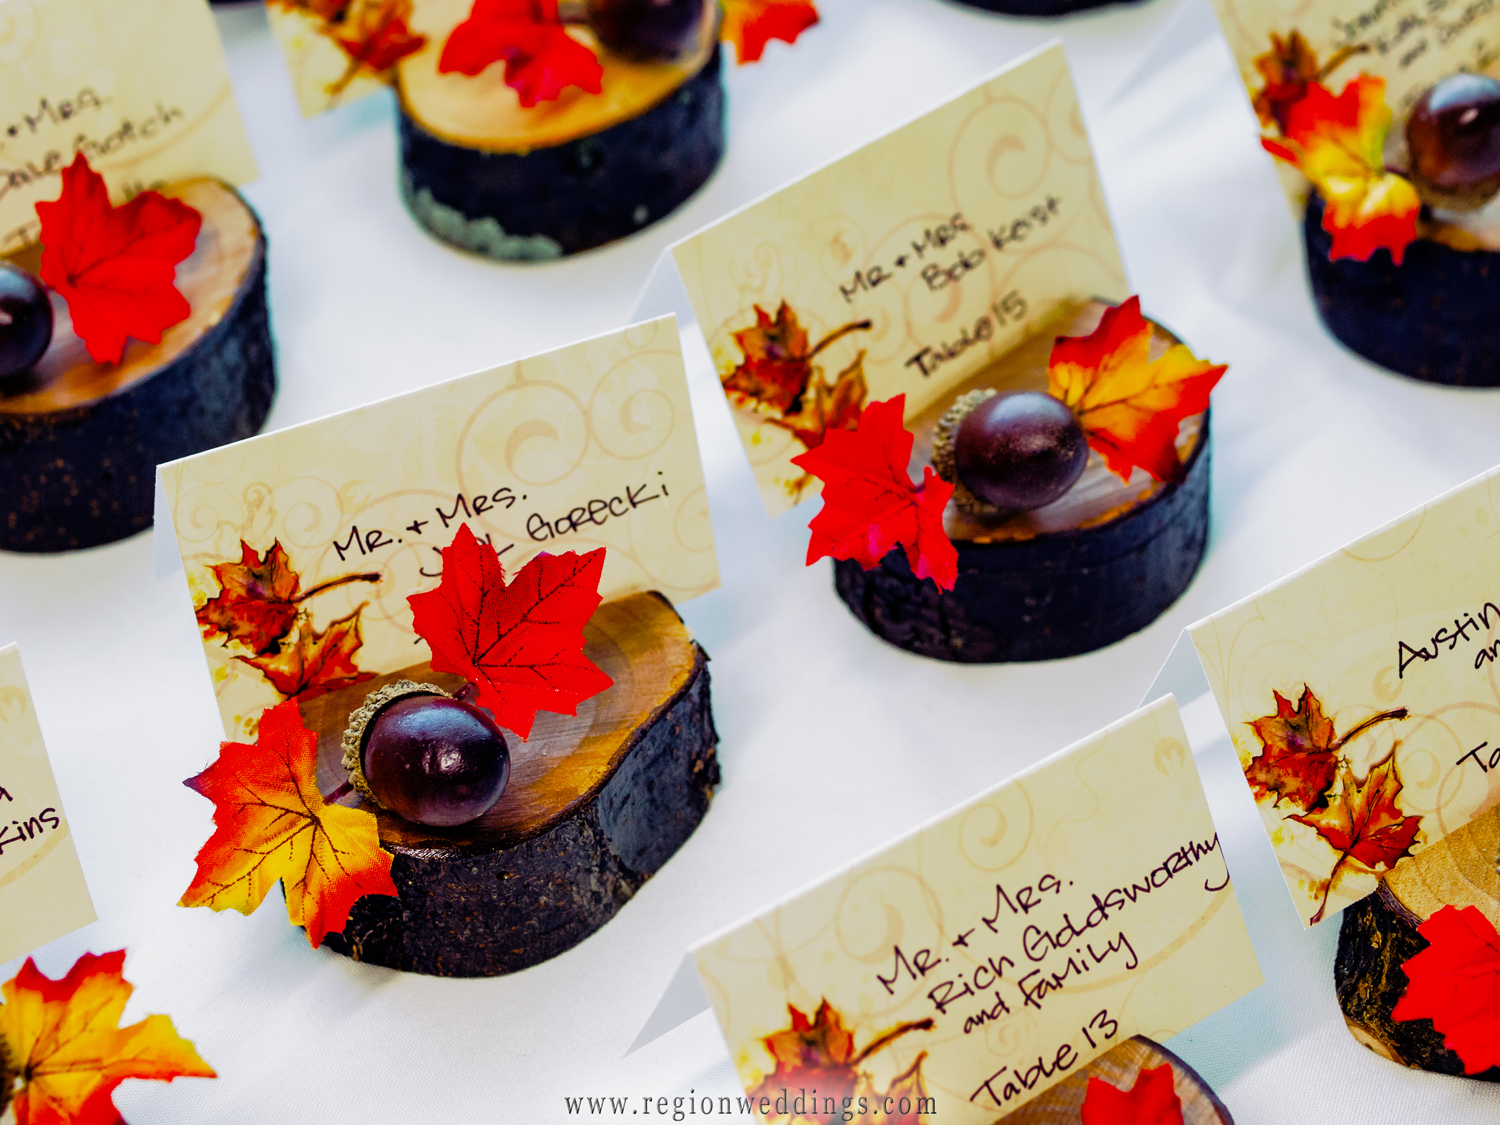 Fall wedding table cards made of miniature logs with the seating card inside the carved out slit.